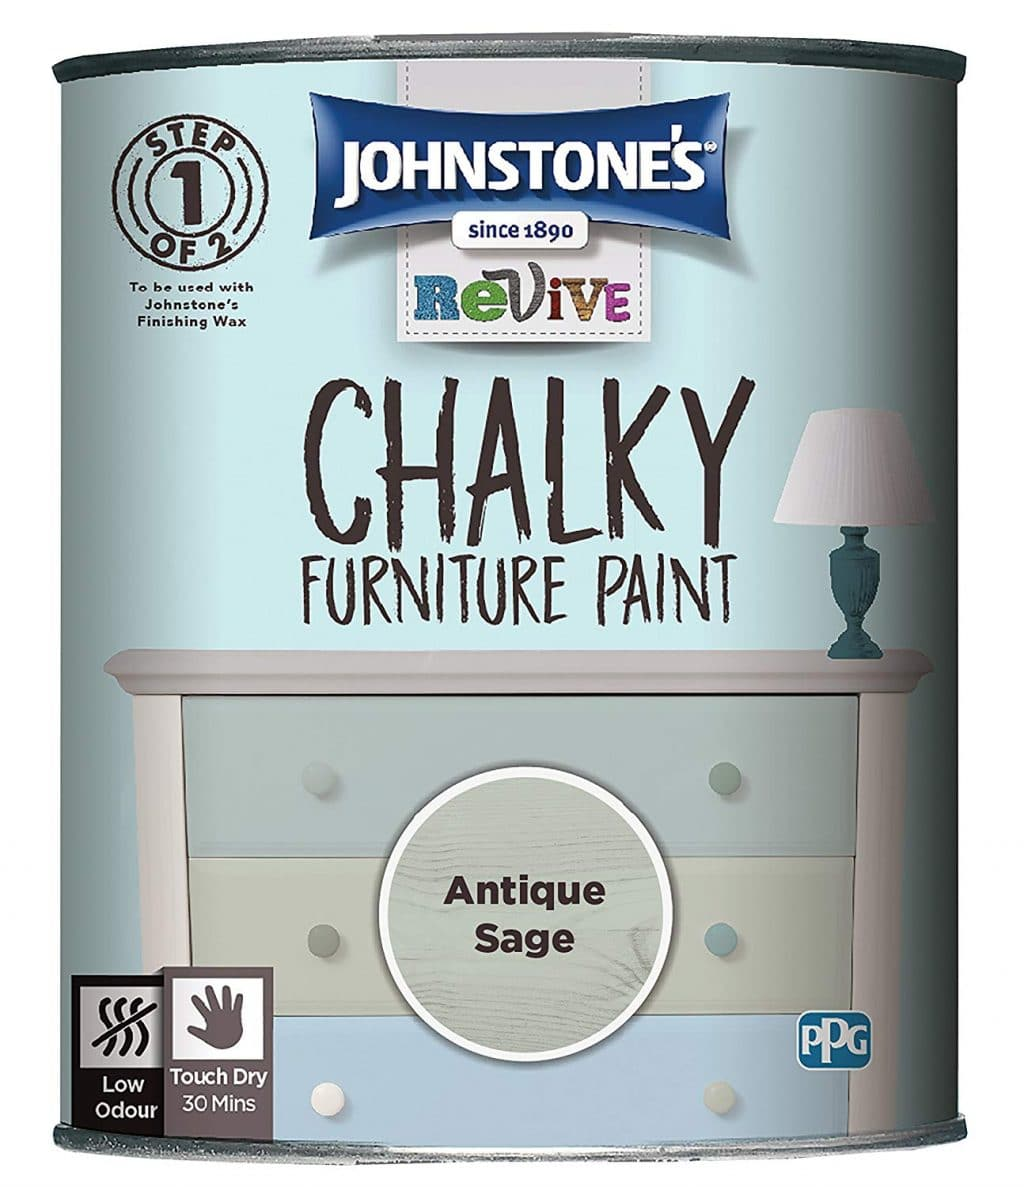 Johnstones chalky furniture paint